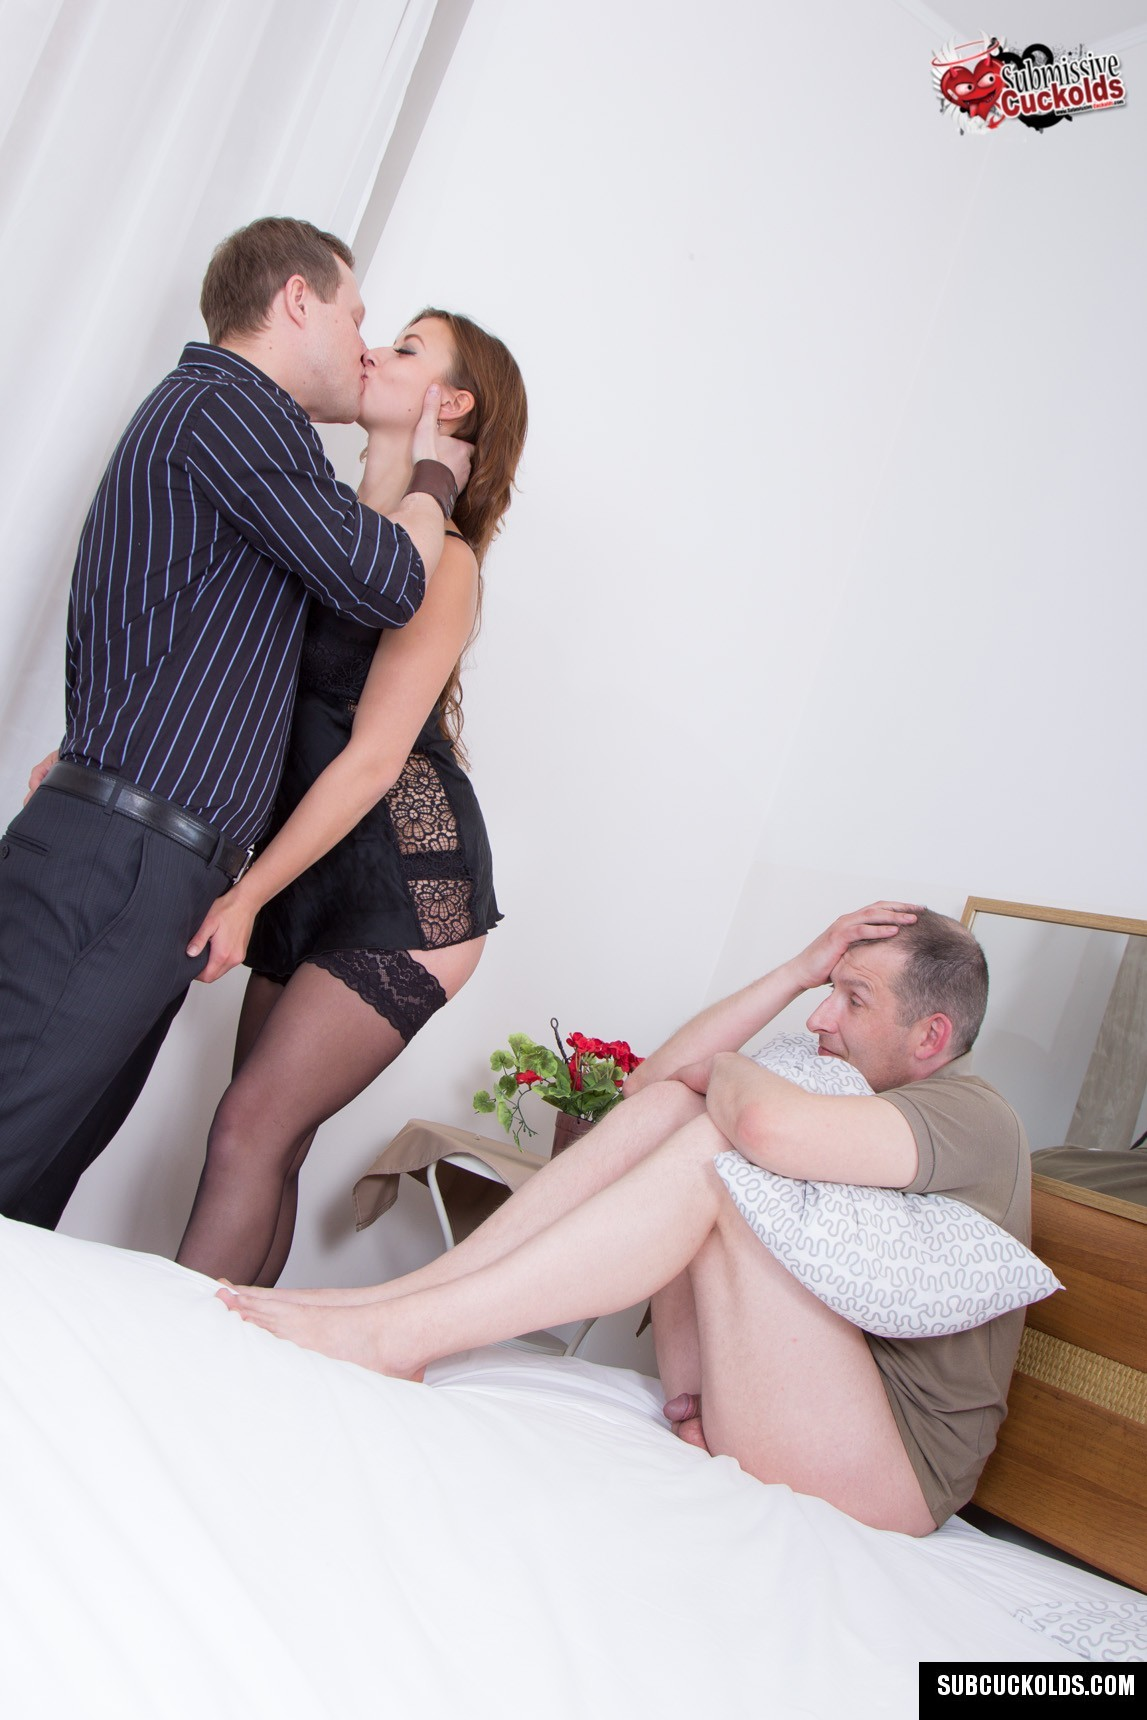 A young cuckold relationship part 1 - 1 part 3